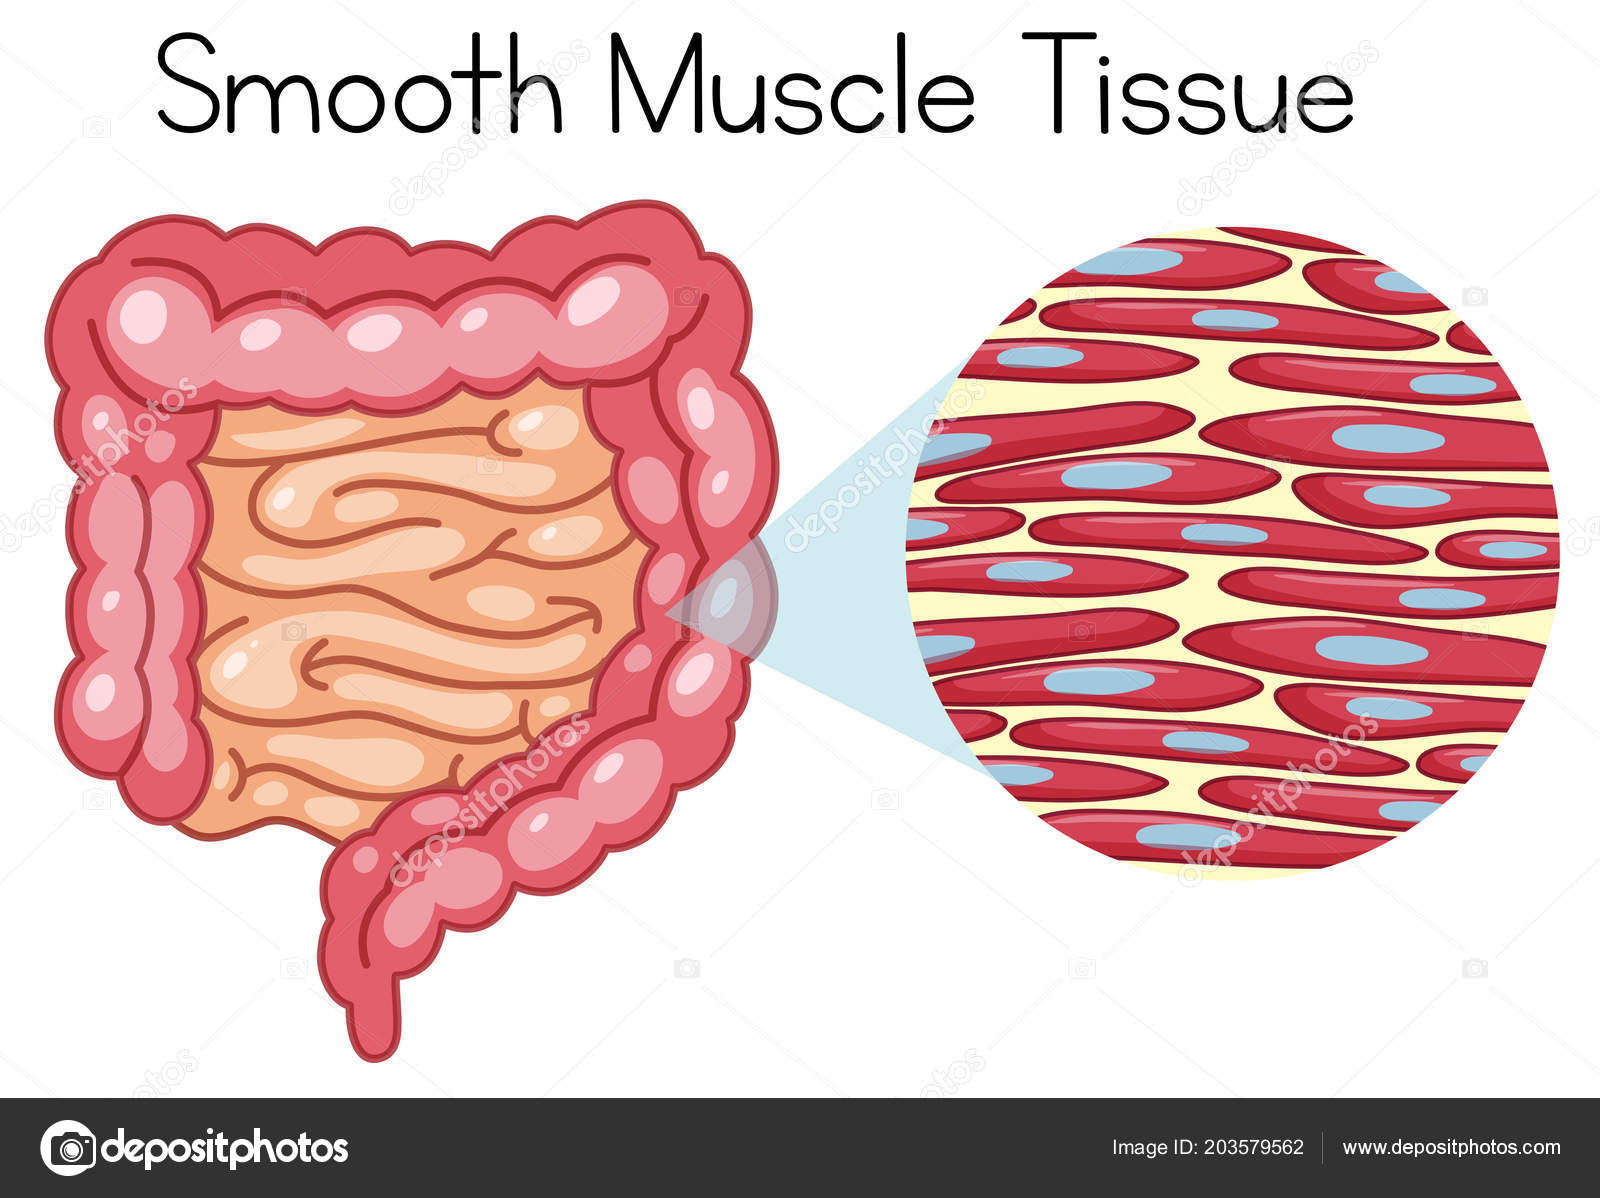 Anatomy Smooth Muscle Tissue Illustration — Stock Vector © brgfx ...